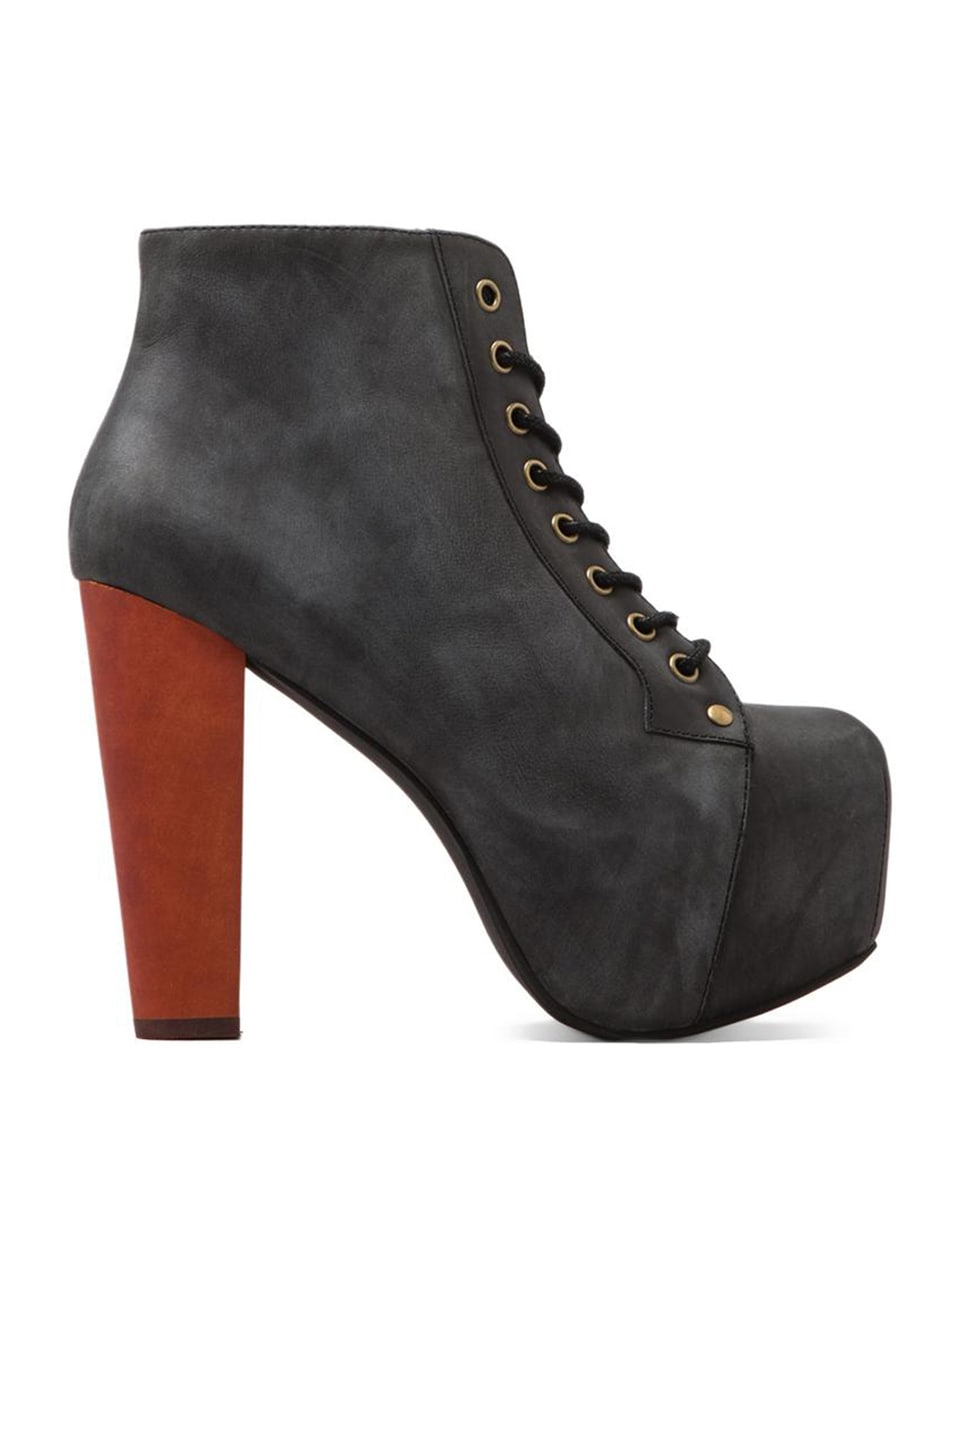 Jeffrey Campbell Lita Platform Lace-up Boot in Black Distressed